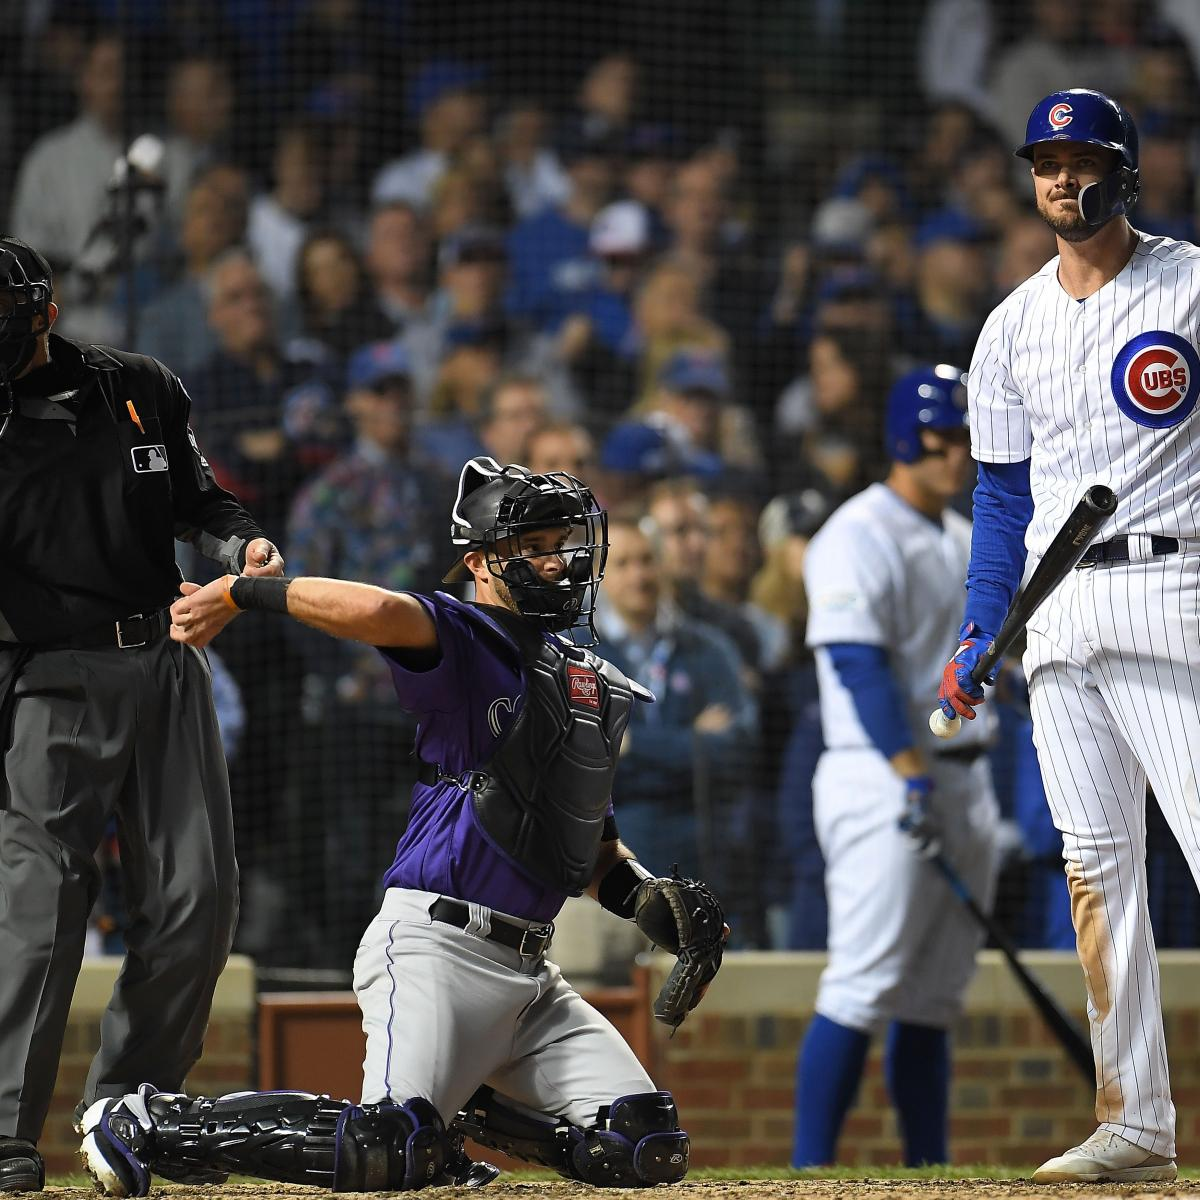 Kris Bryant Rejecting over $200M from Cubs Is Huge Gamble He May Regret